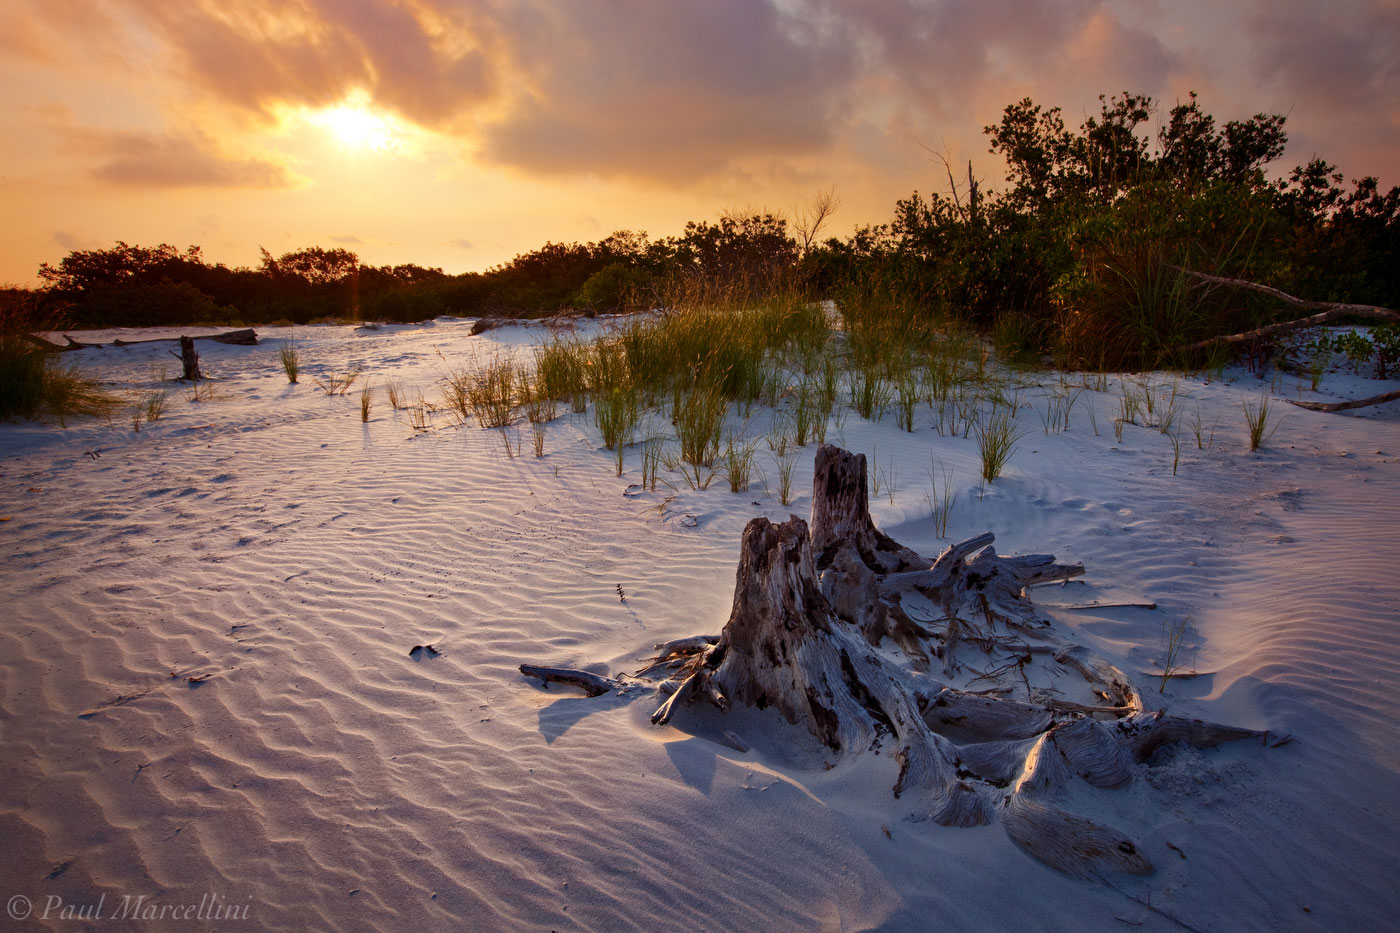 ft. desoto, beach, sunrise, florida, south florida, nature, photography, ft desoto, fort desoto, desoto, photo